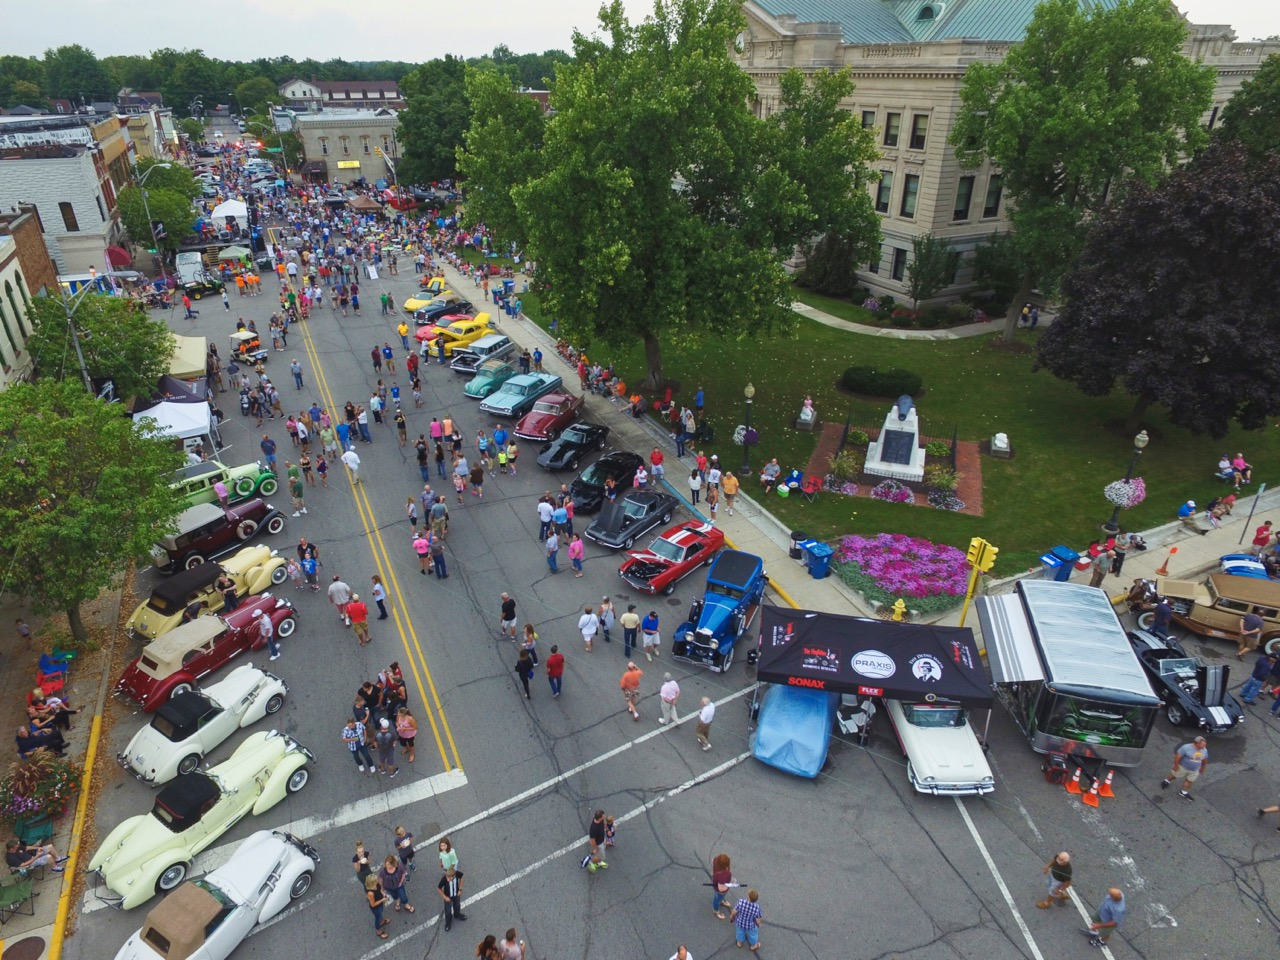 Auburn, Cord and Duesenberg are line downtown streets | ACD Festival photos